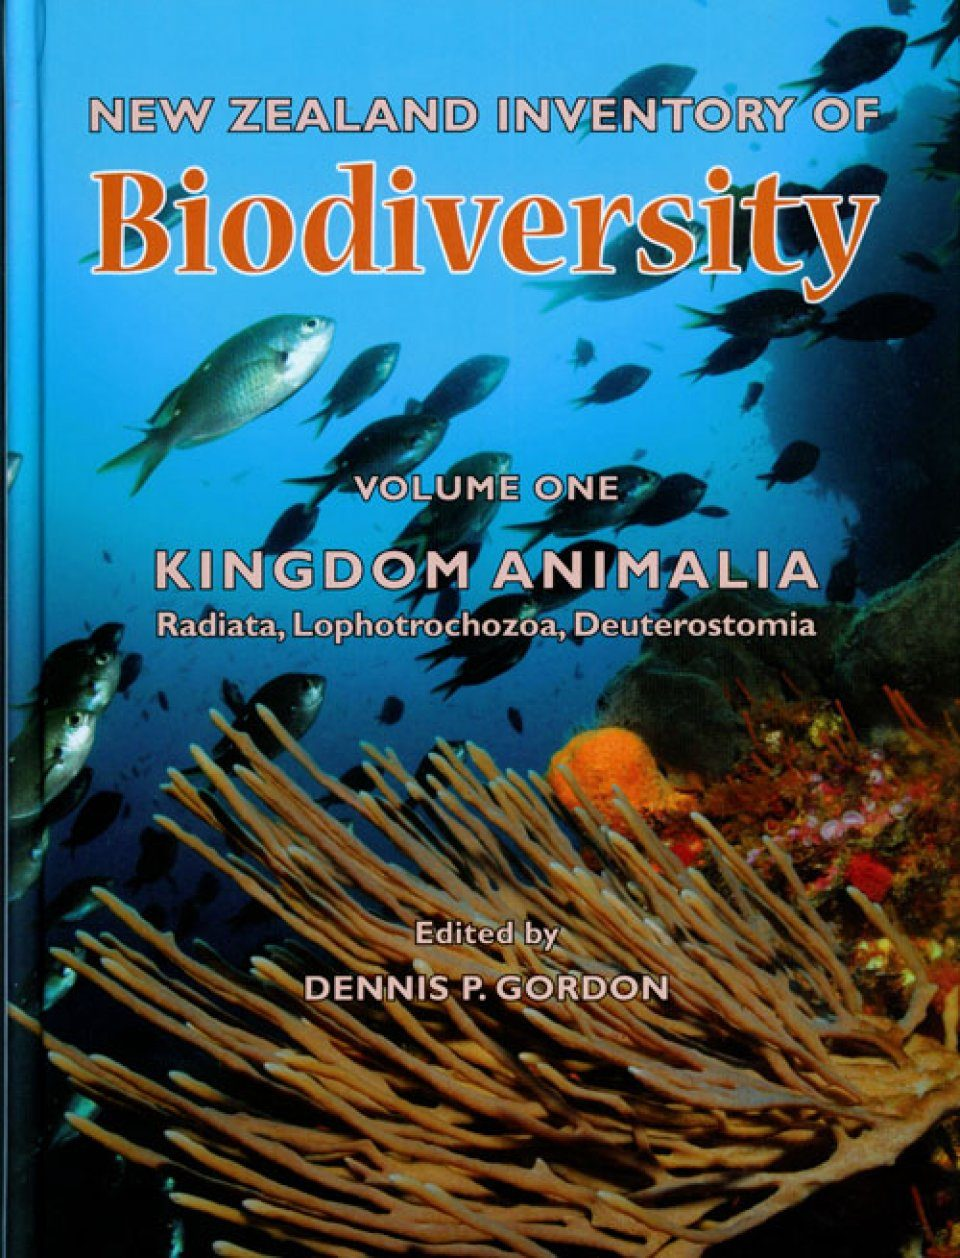 New Zealand Inventory of Biodiversity, Volume 1: Kingdom Animalia